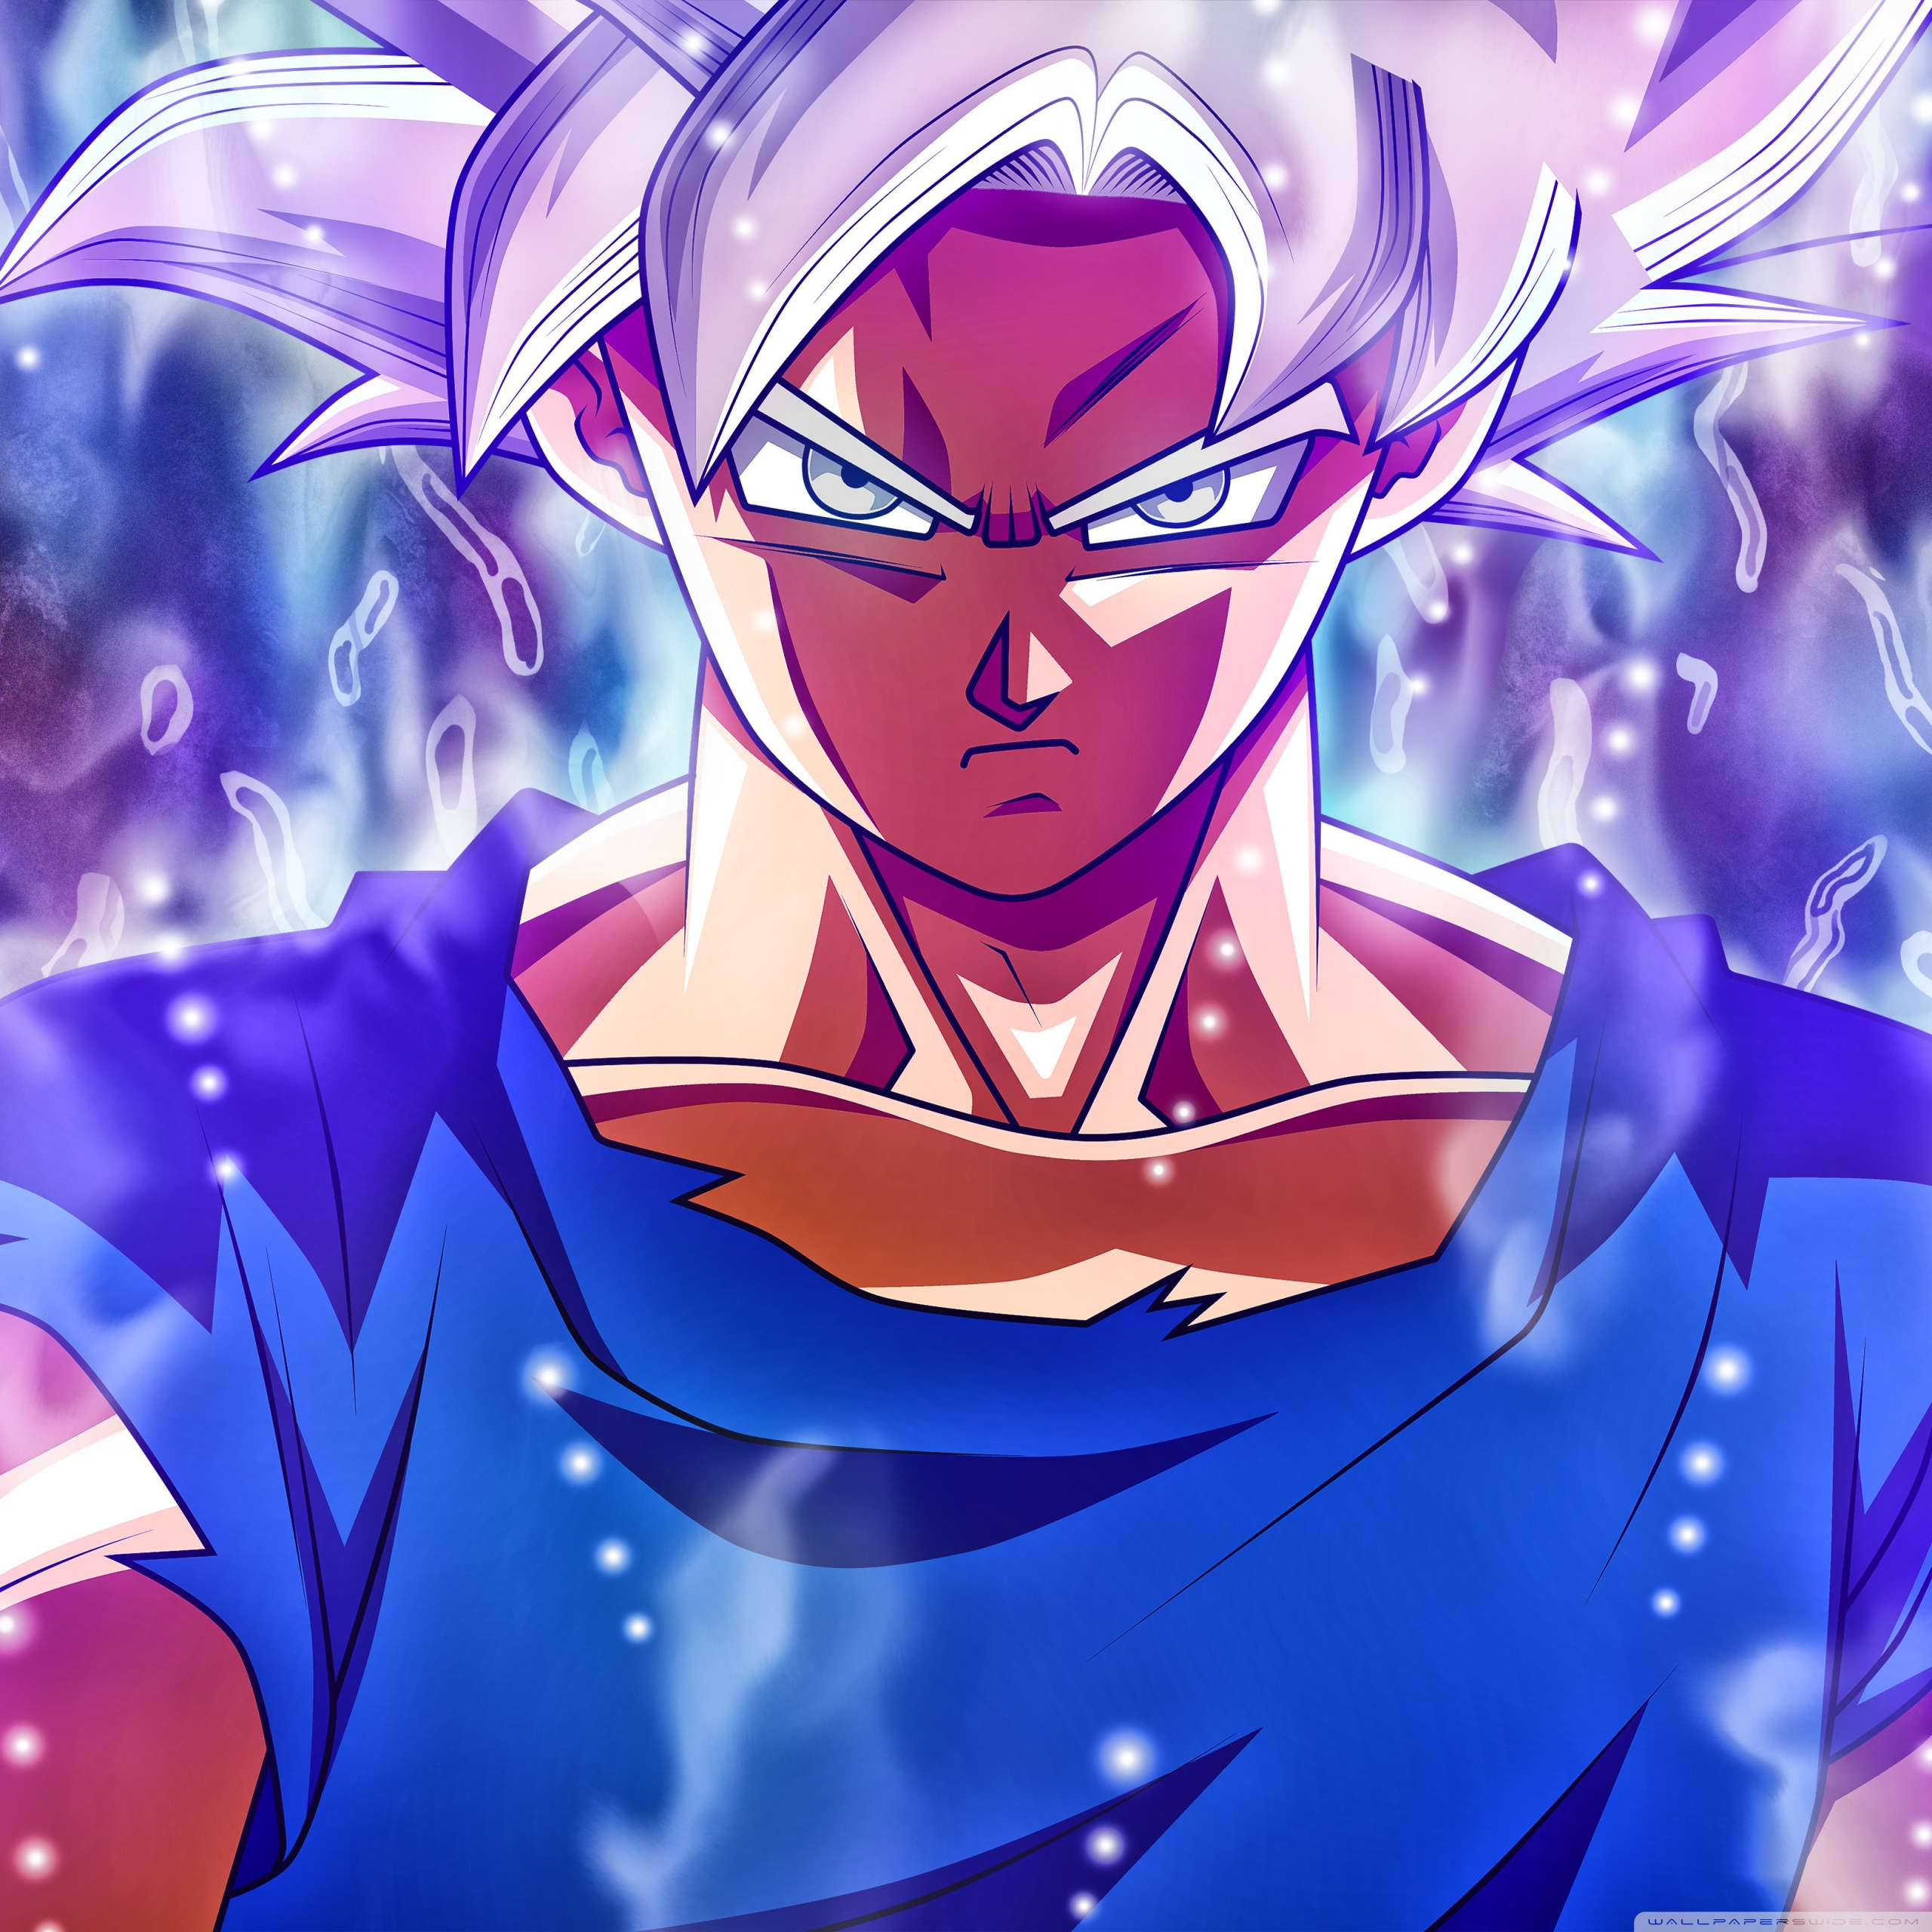 Goku Ultra Instinct Wallpaper 1920x1080 Posted By Christopher Sellers